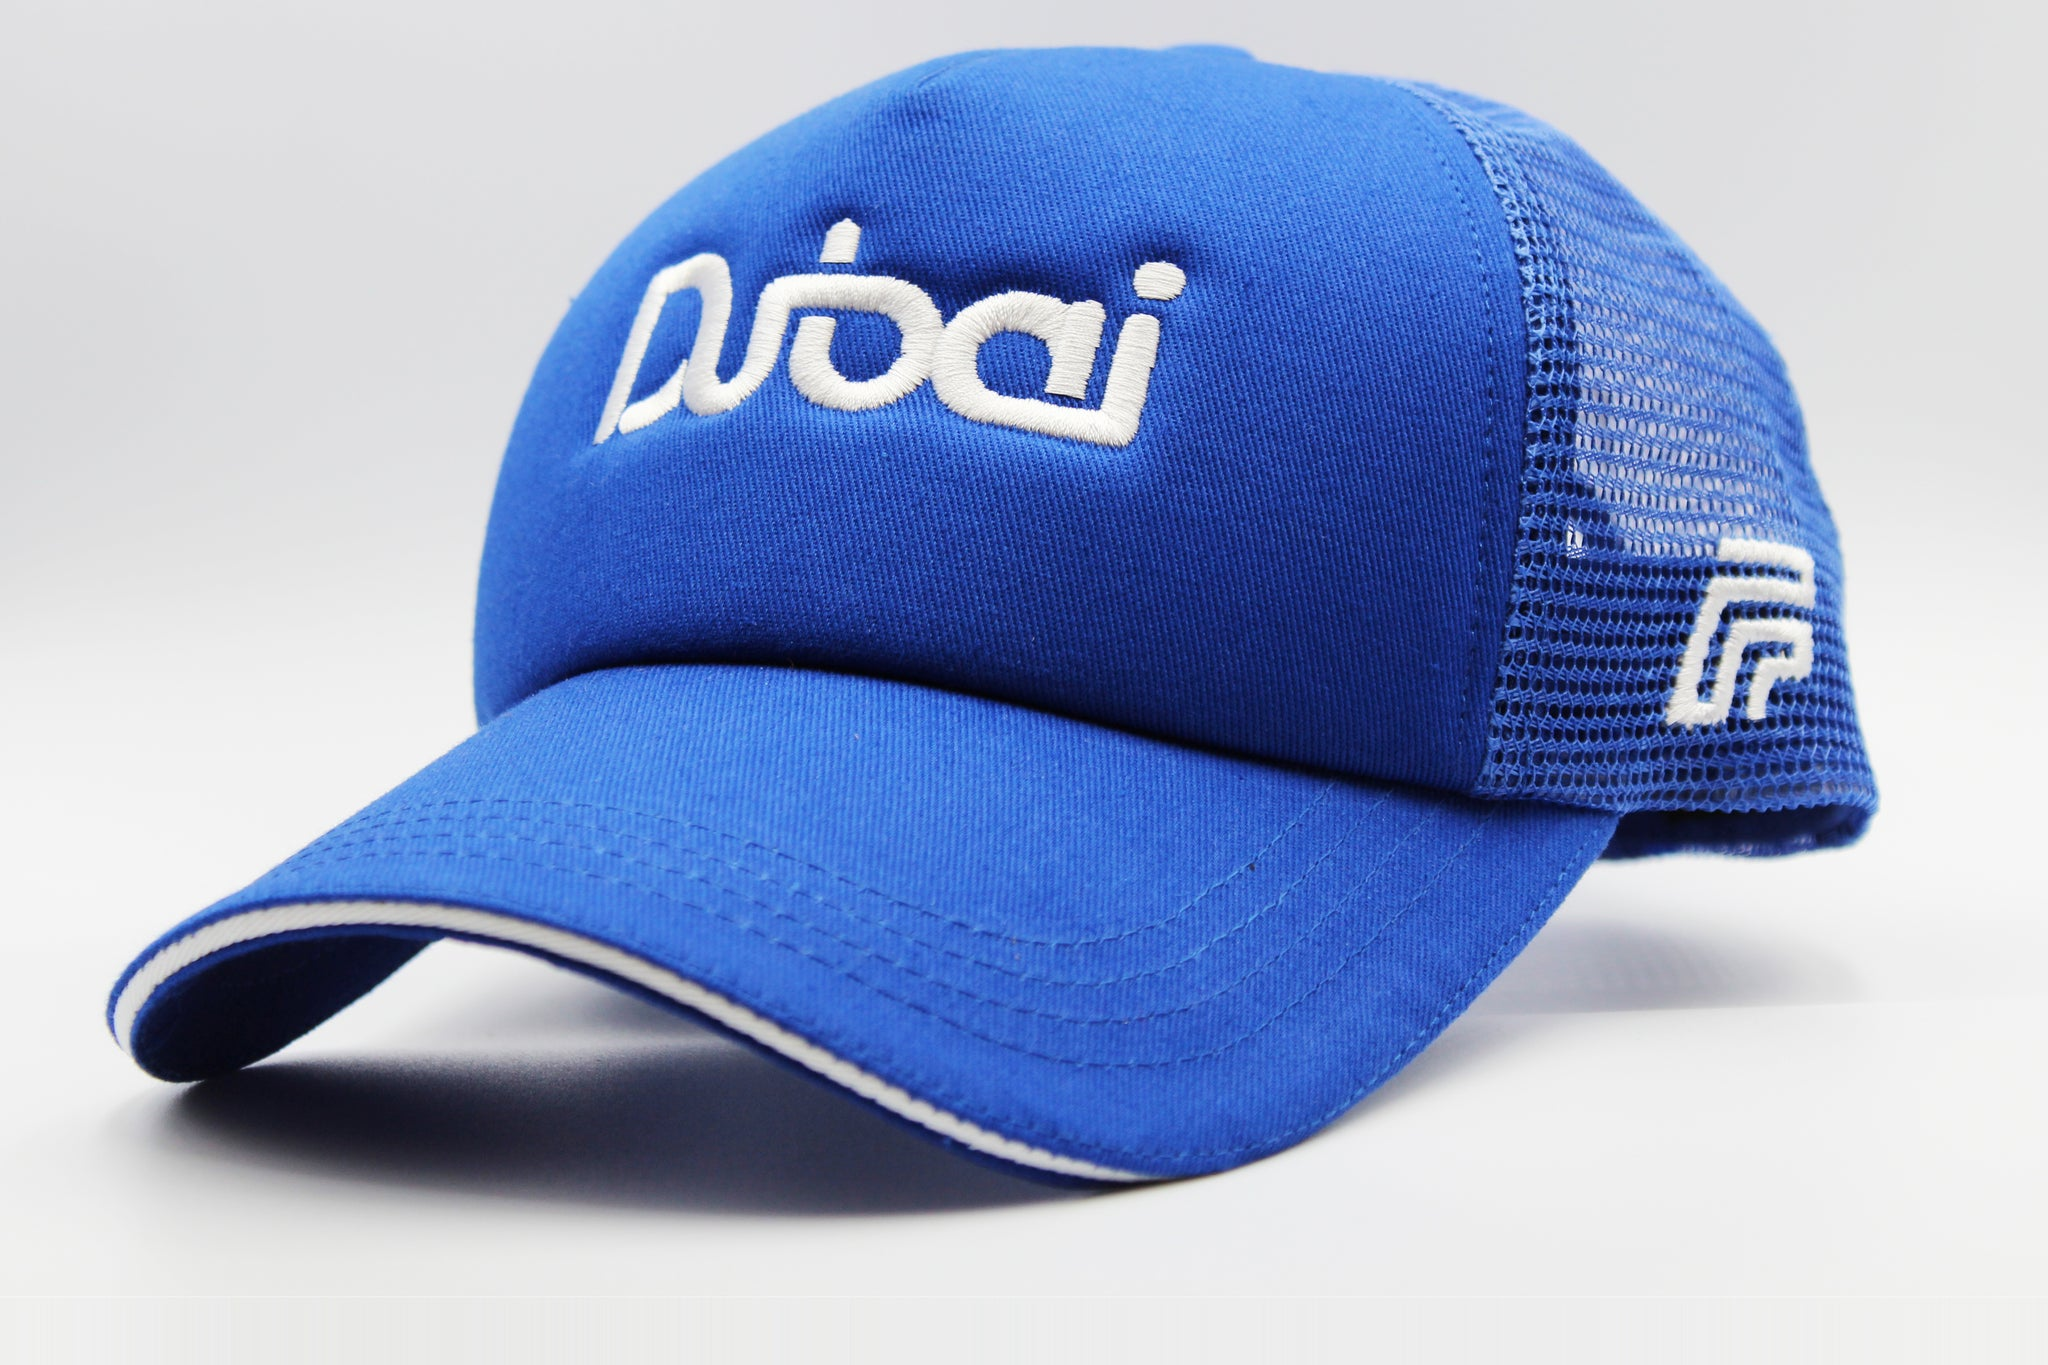 The Stylish Dubai's Logo Cap - Blue